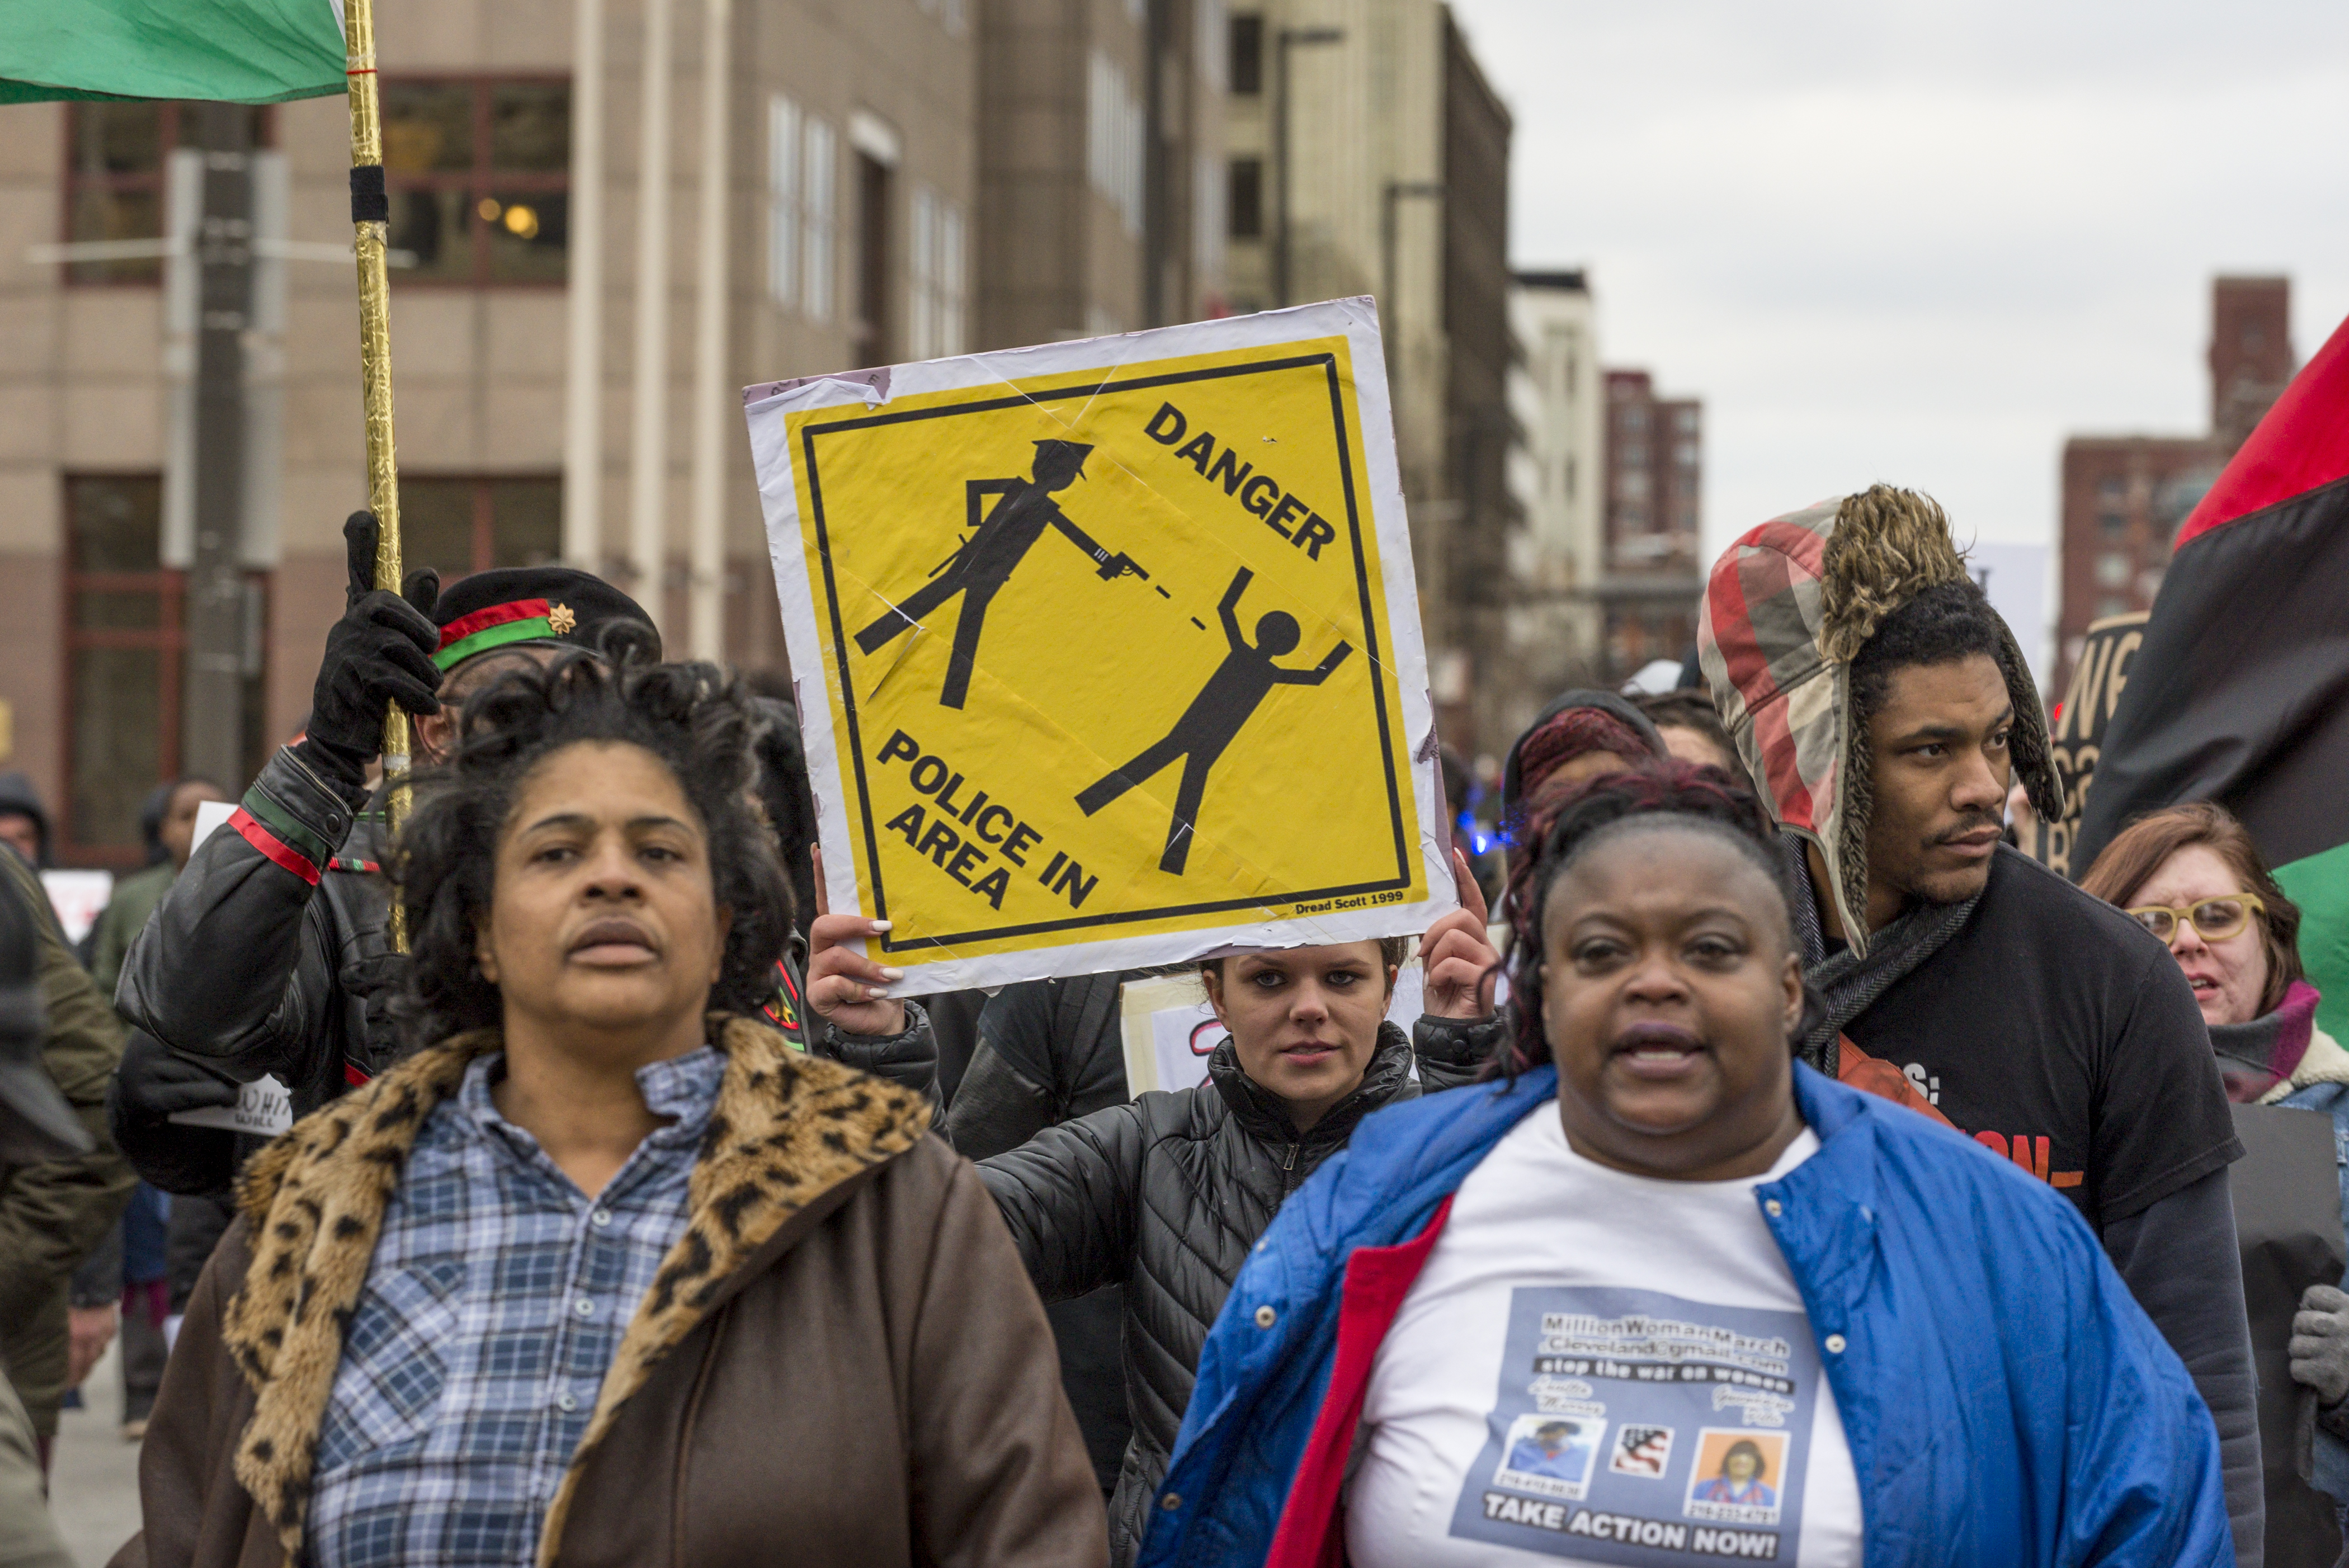 Katy Kostenko (Holding sign), a 19-year old resident of Cleveland, marches with other activists on St Clair Ave. on December 29, 2015, in Cleveland, Ohio. (Getty)